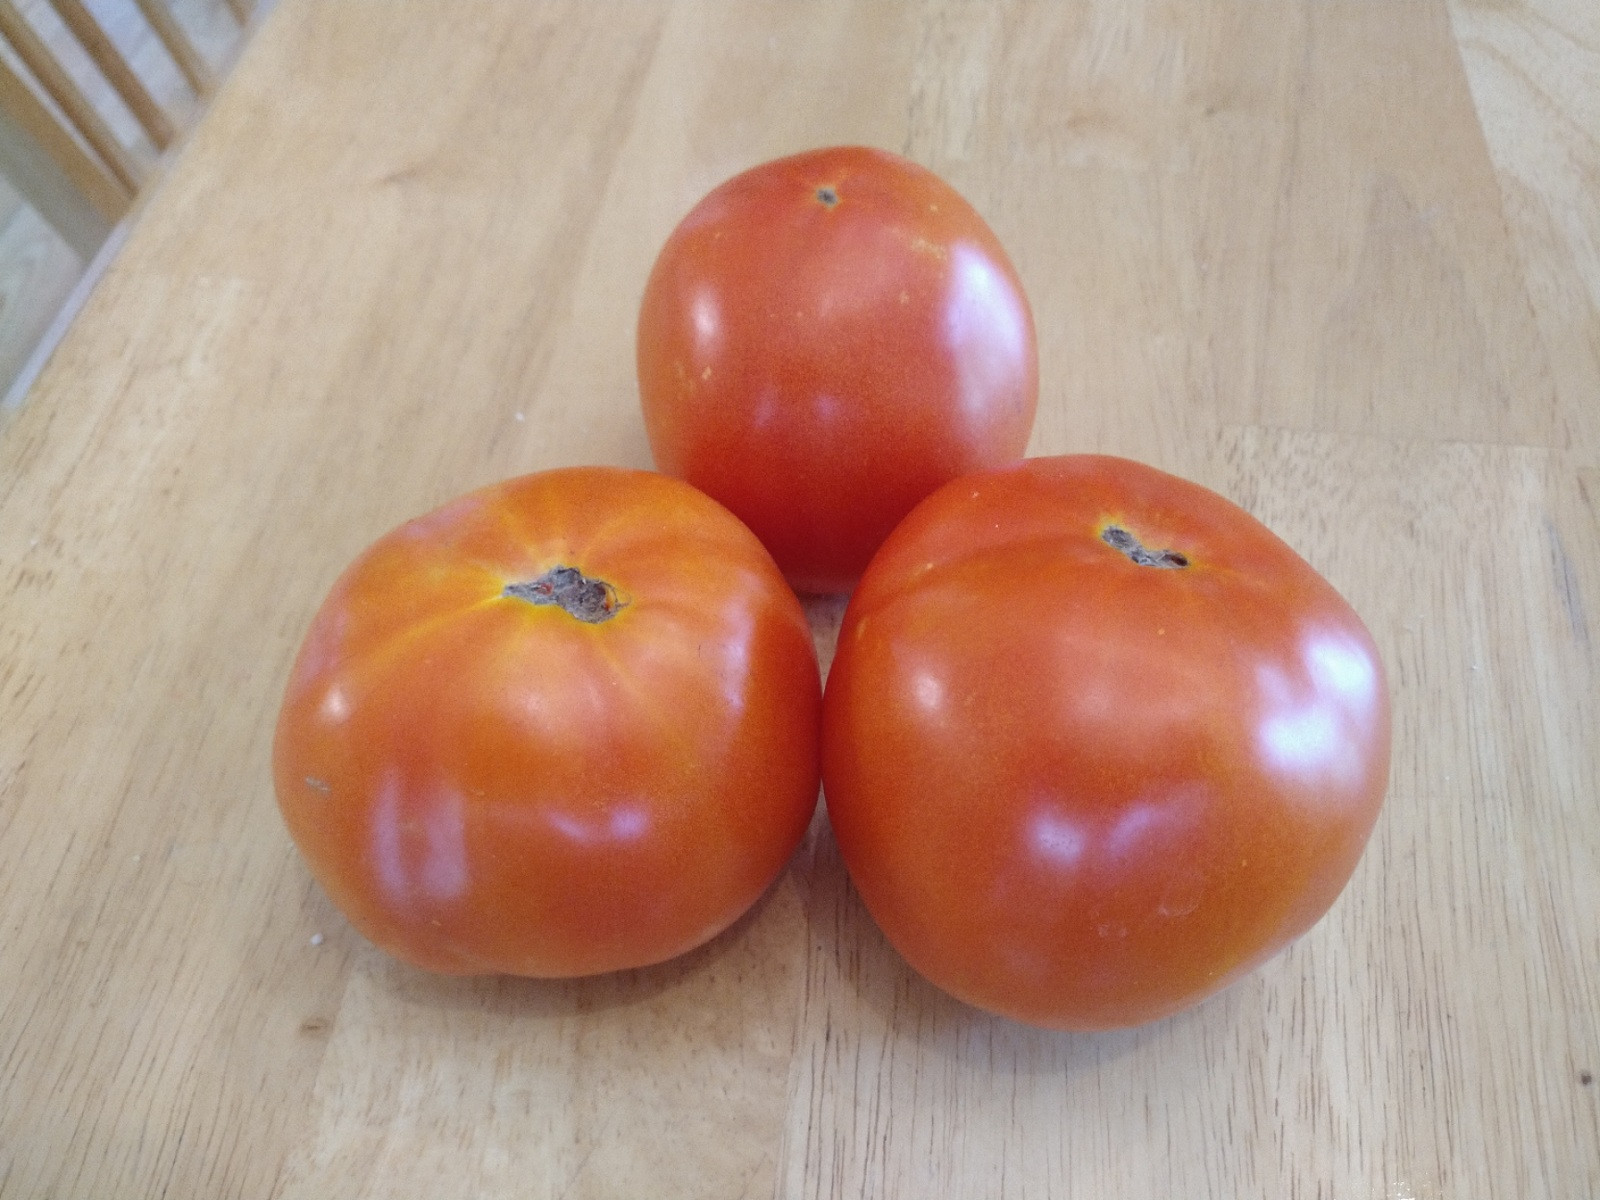 1 lb Vine ripe tomatoes (approx 3 tomatoes)